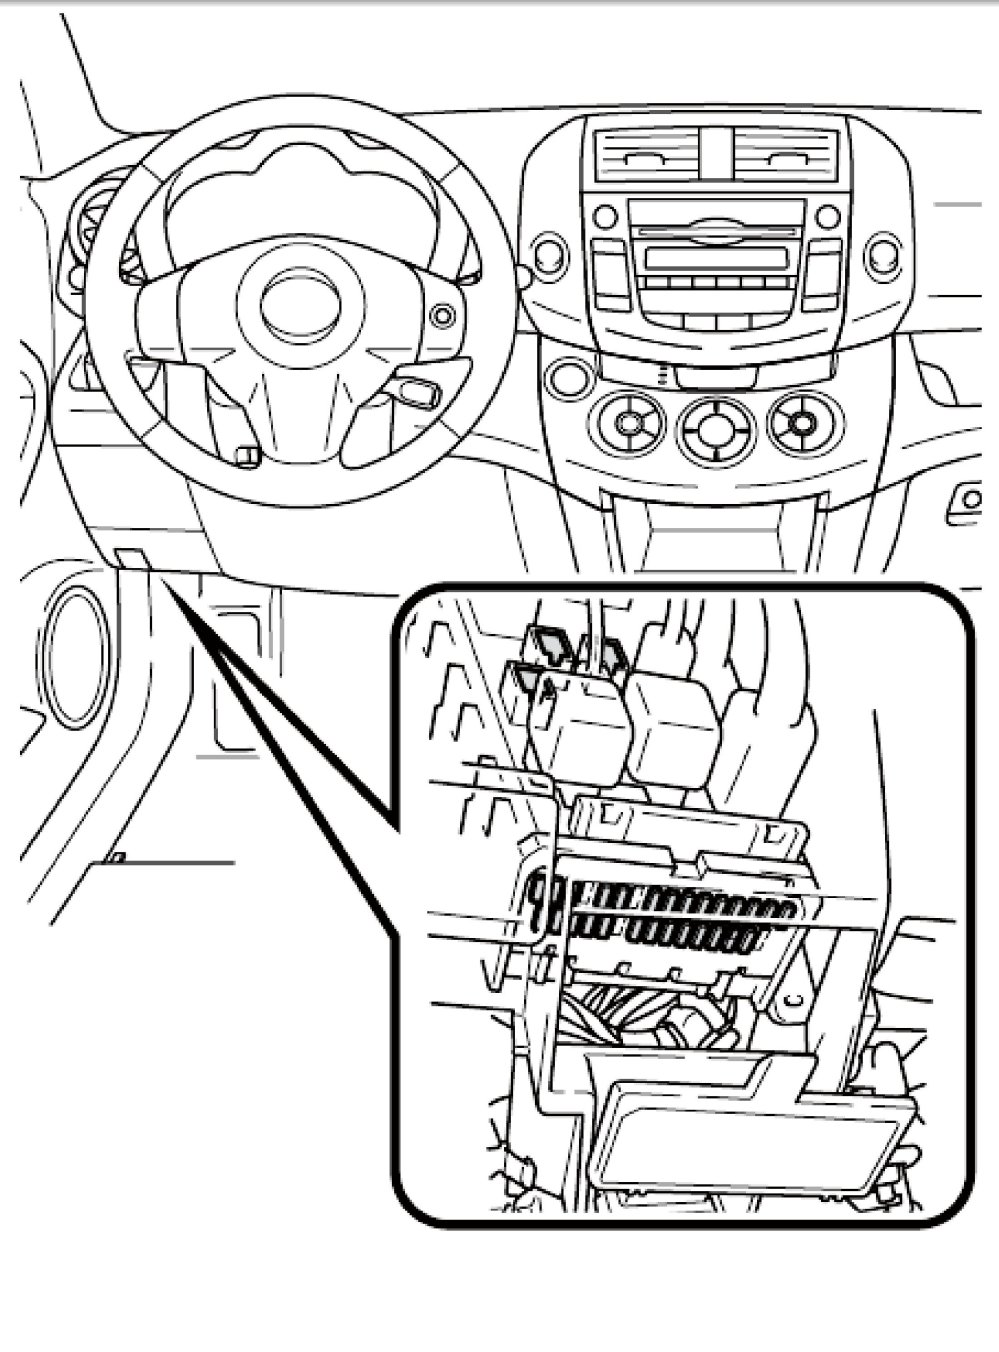 medium resolution of 1999 rav4 fuse box wiring diagram schematics 1999 jeep grand cherokee fuse box 1999 toyota rav4 fuse box